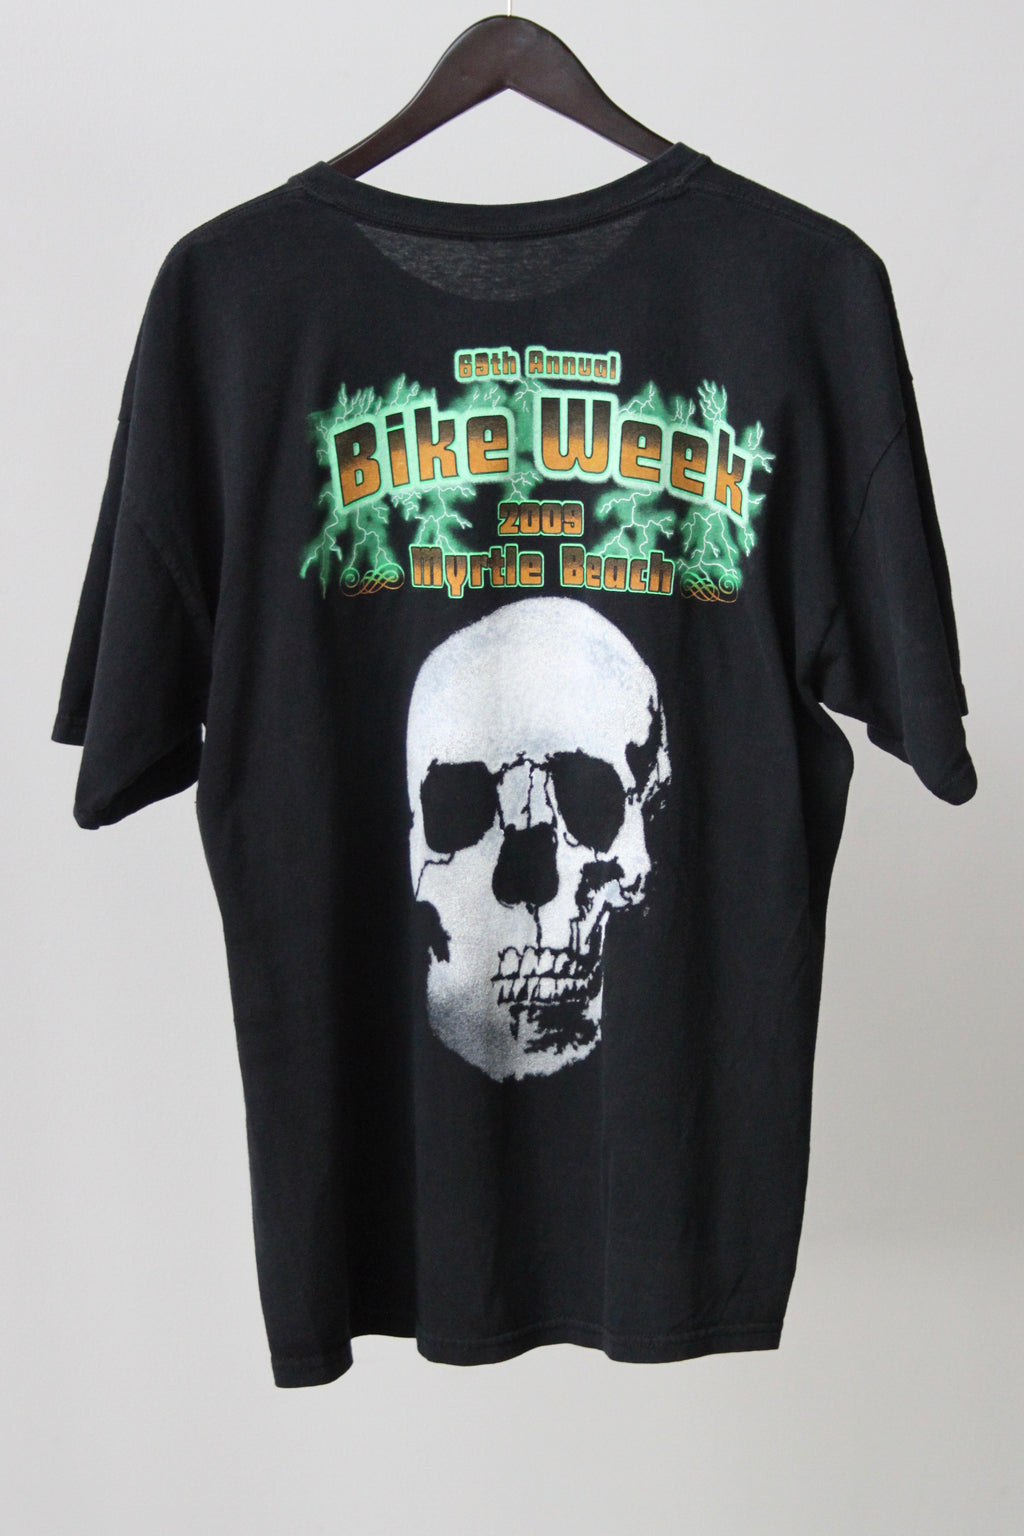 WSL Customized Vintage Reversible 69th Annual Bike Week T-Shirt